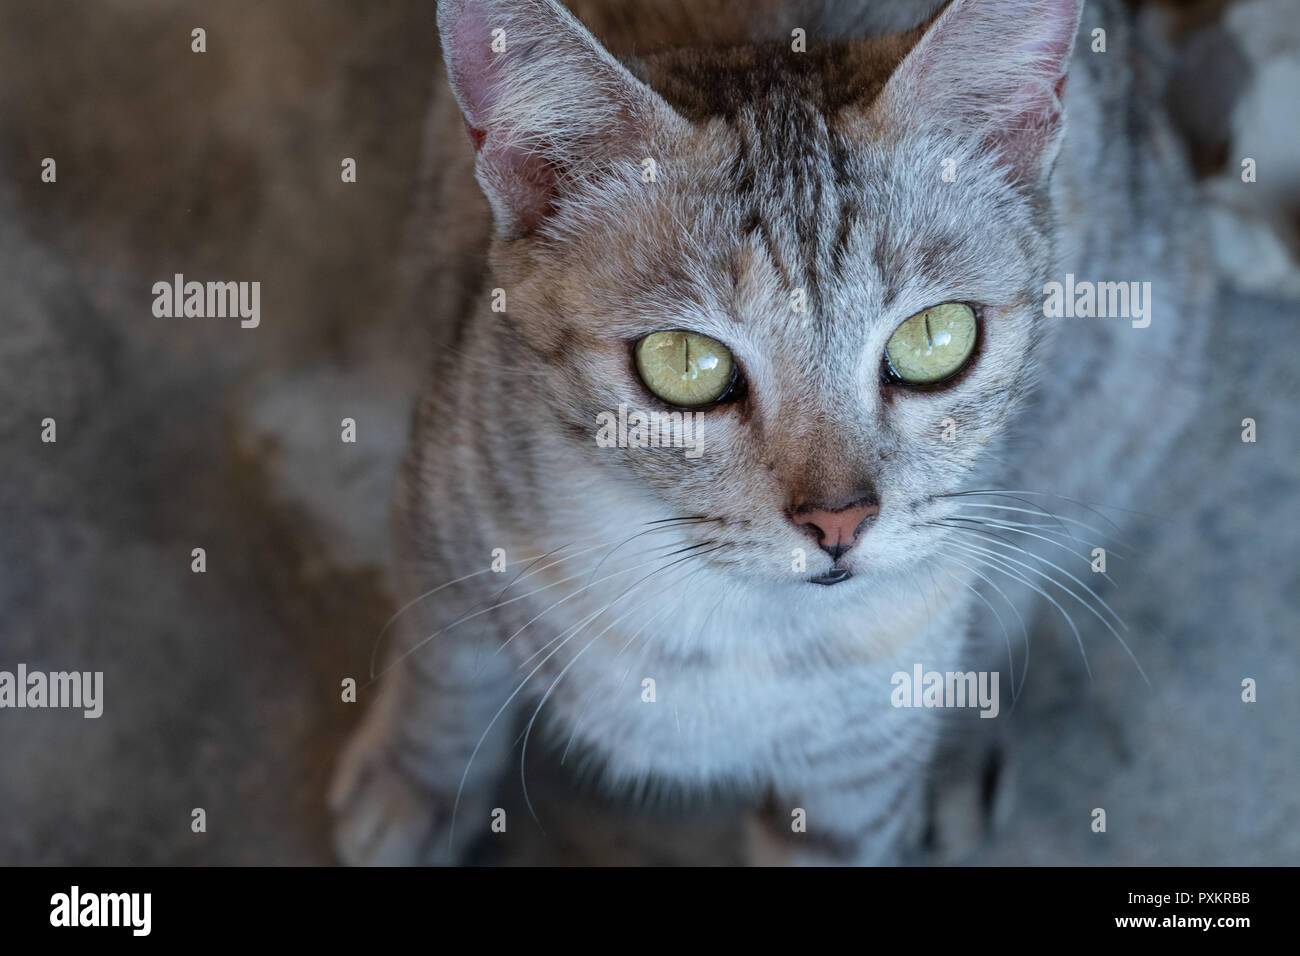 Top view closeup of gray cat with yellow eyes - Stock Image